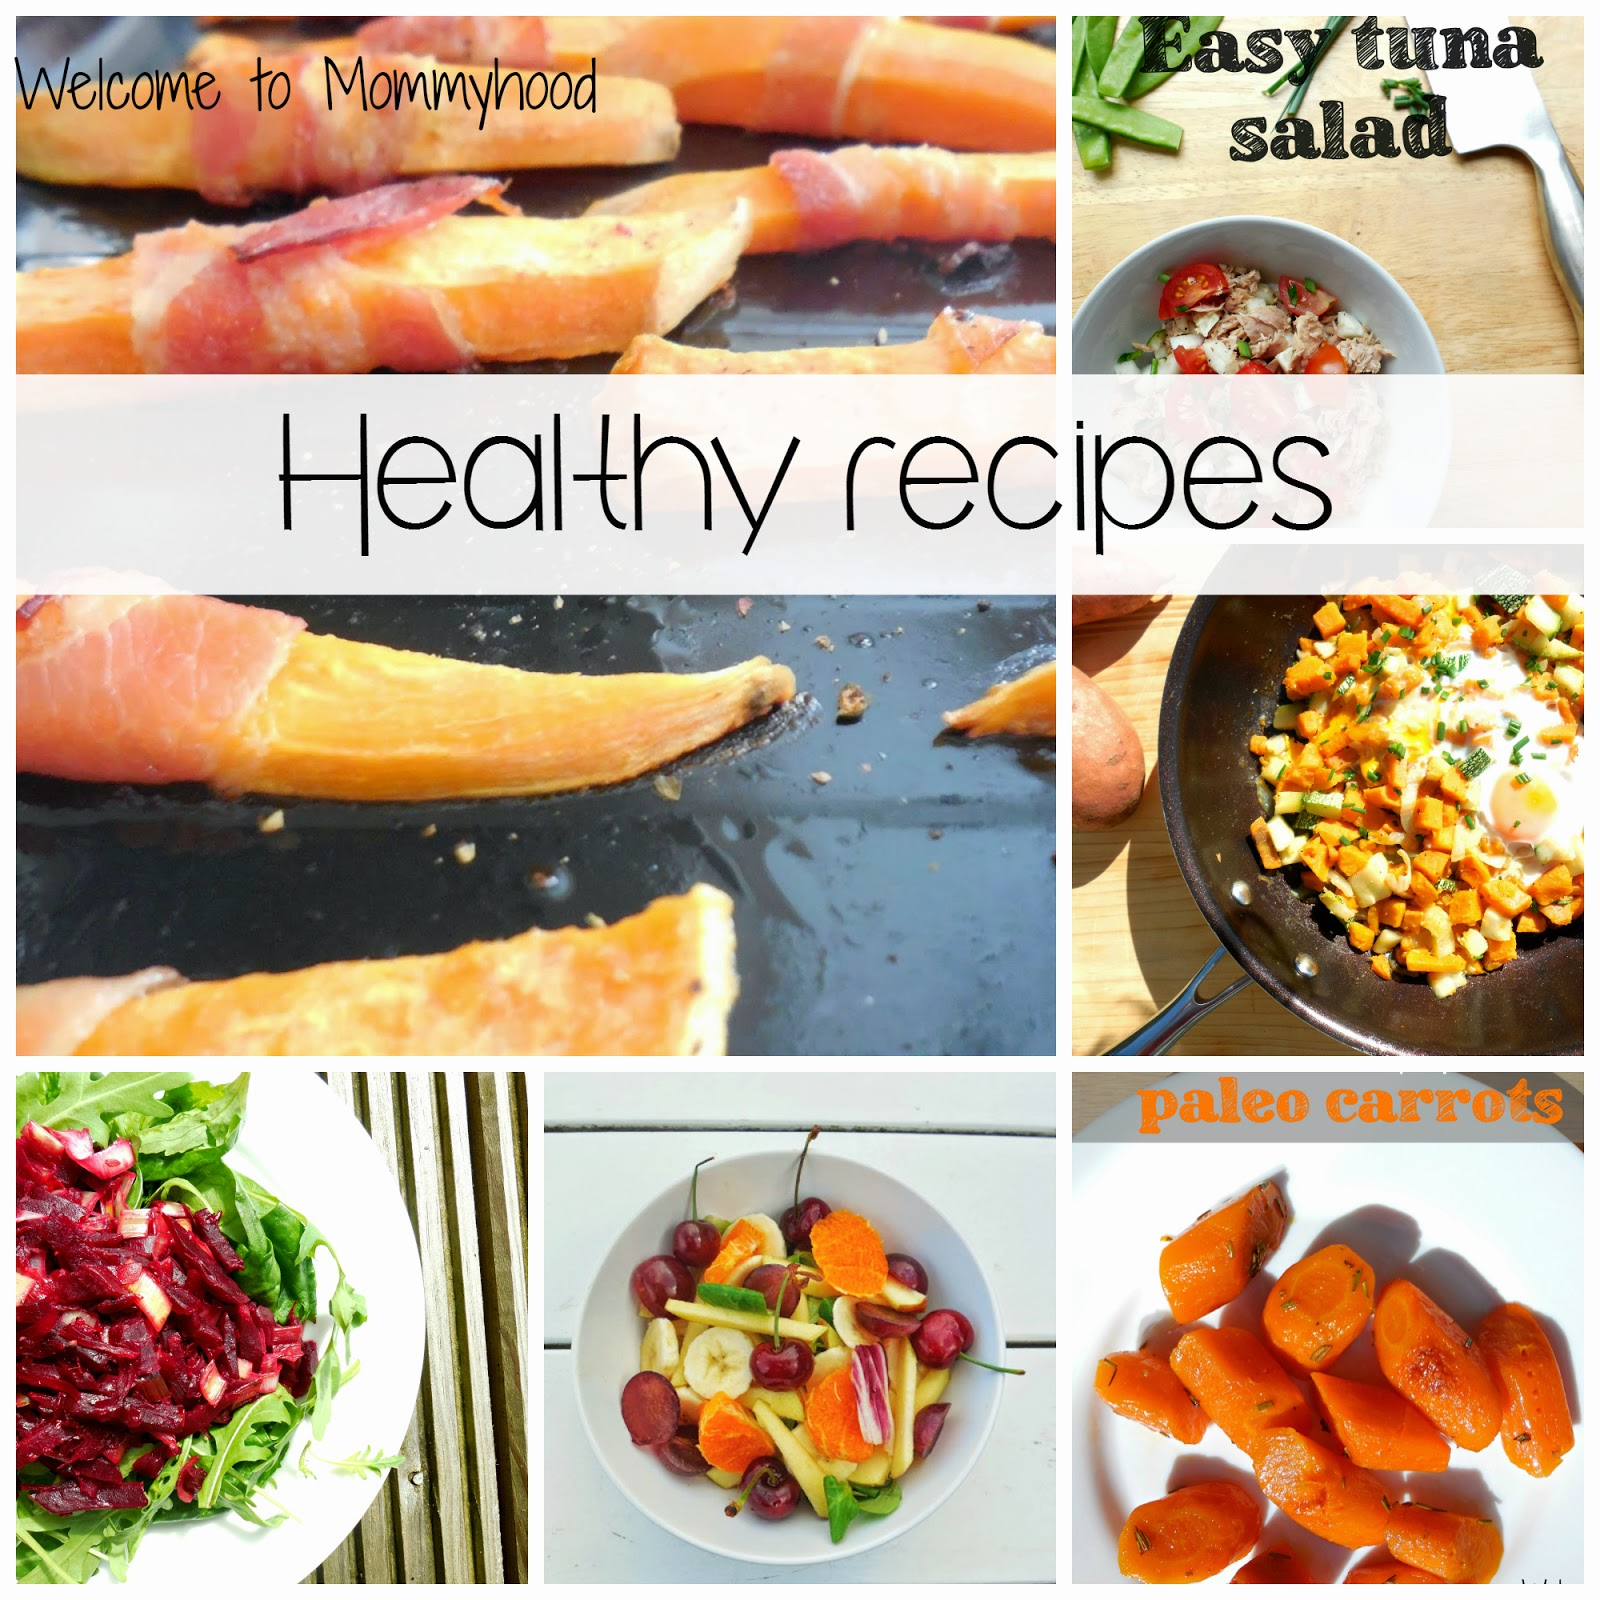 Easy, healthy recipes by Welcome to Mommyhood #Easyhealthyrecipes